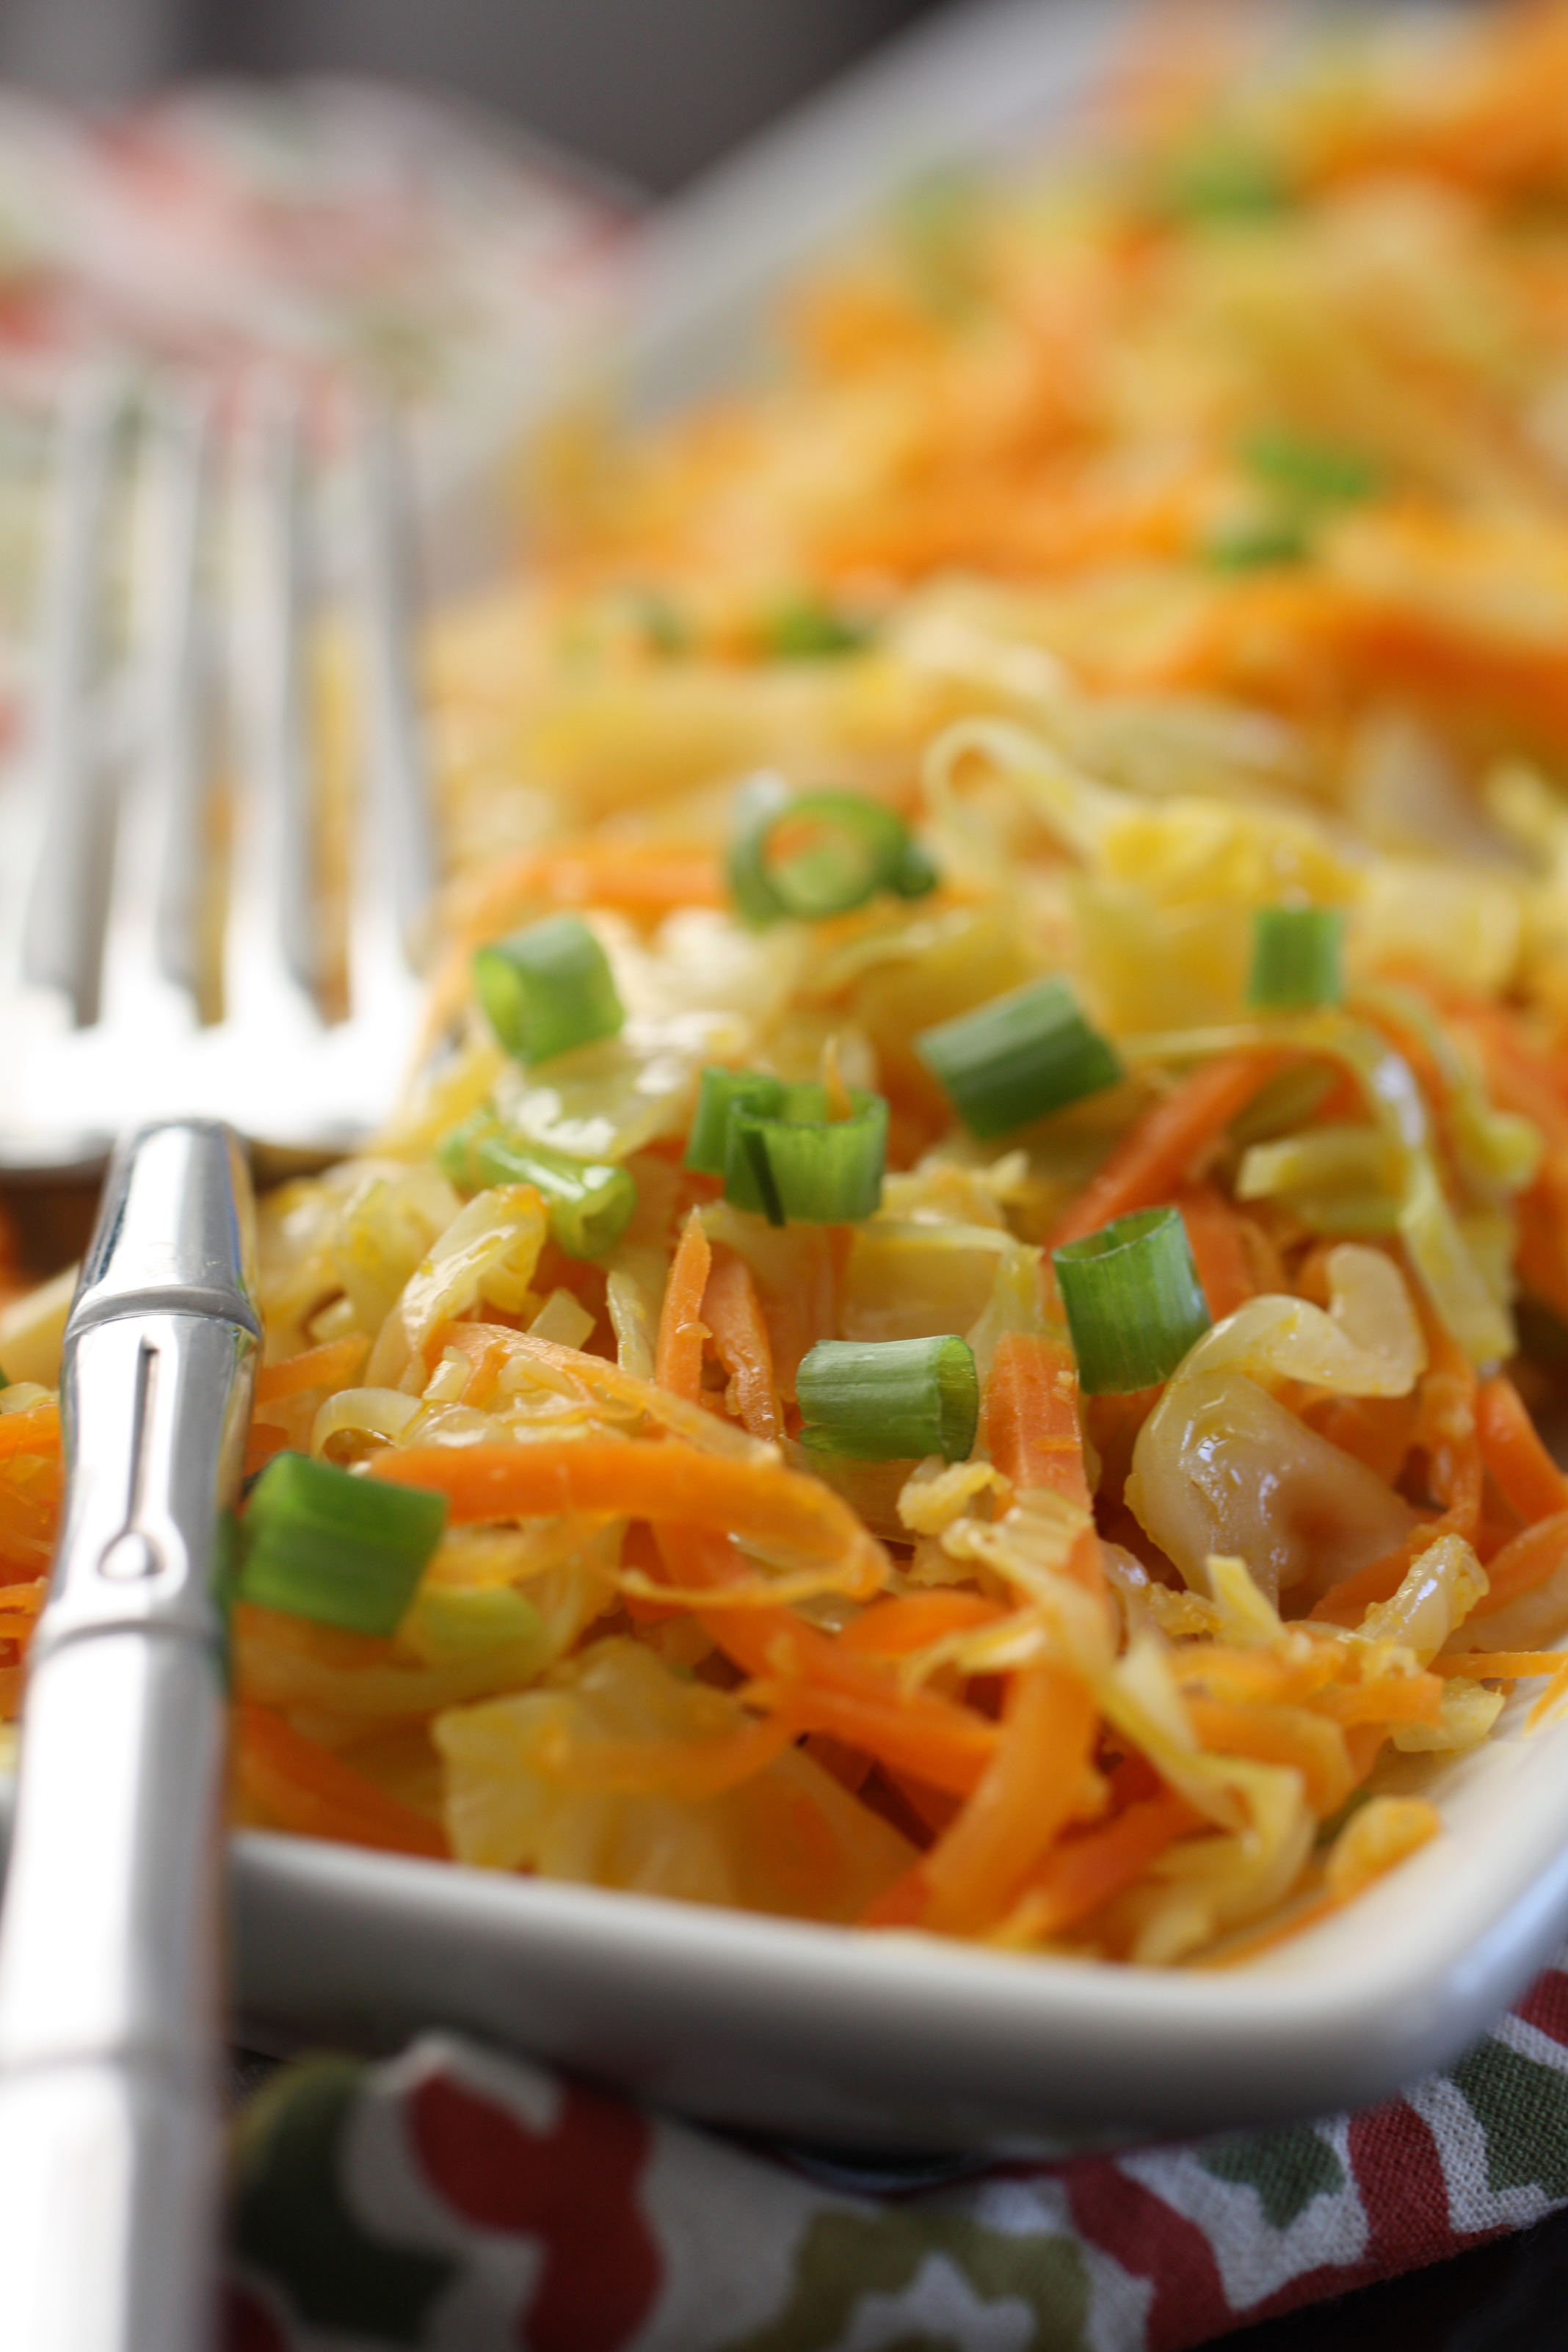 Ginger fried cabbage and carrots aip paleo vegan eat heal thrive alternate forumfinder Image collections